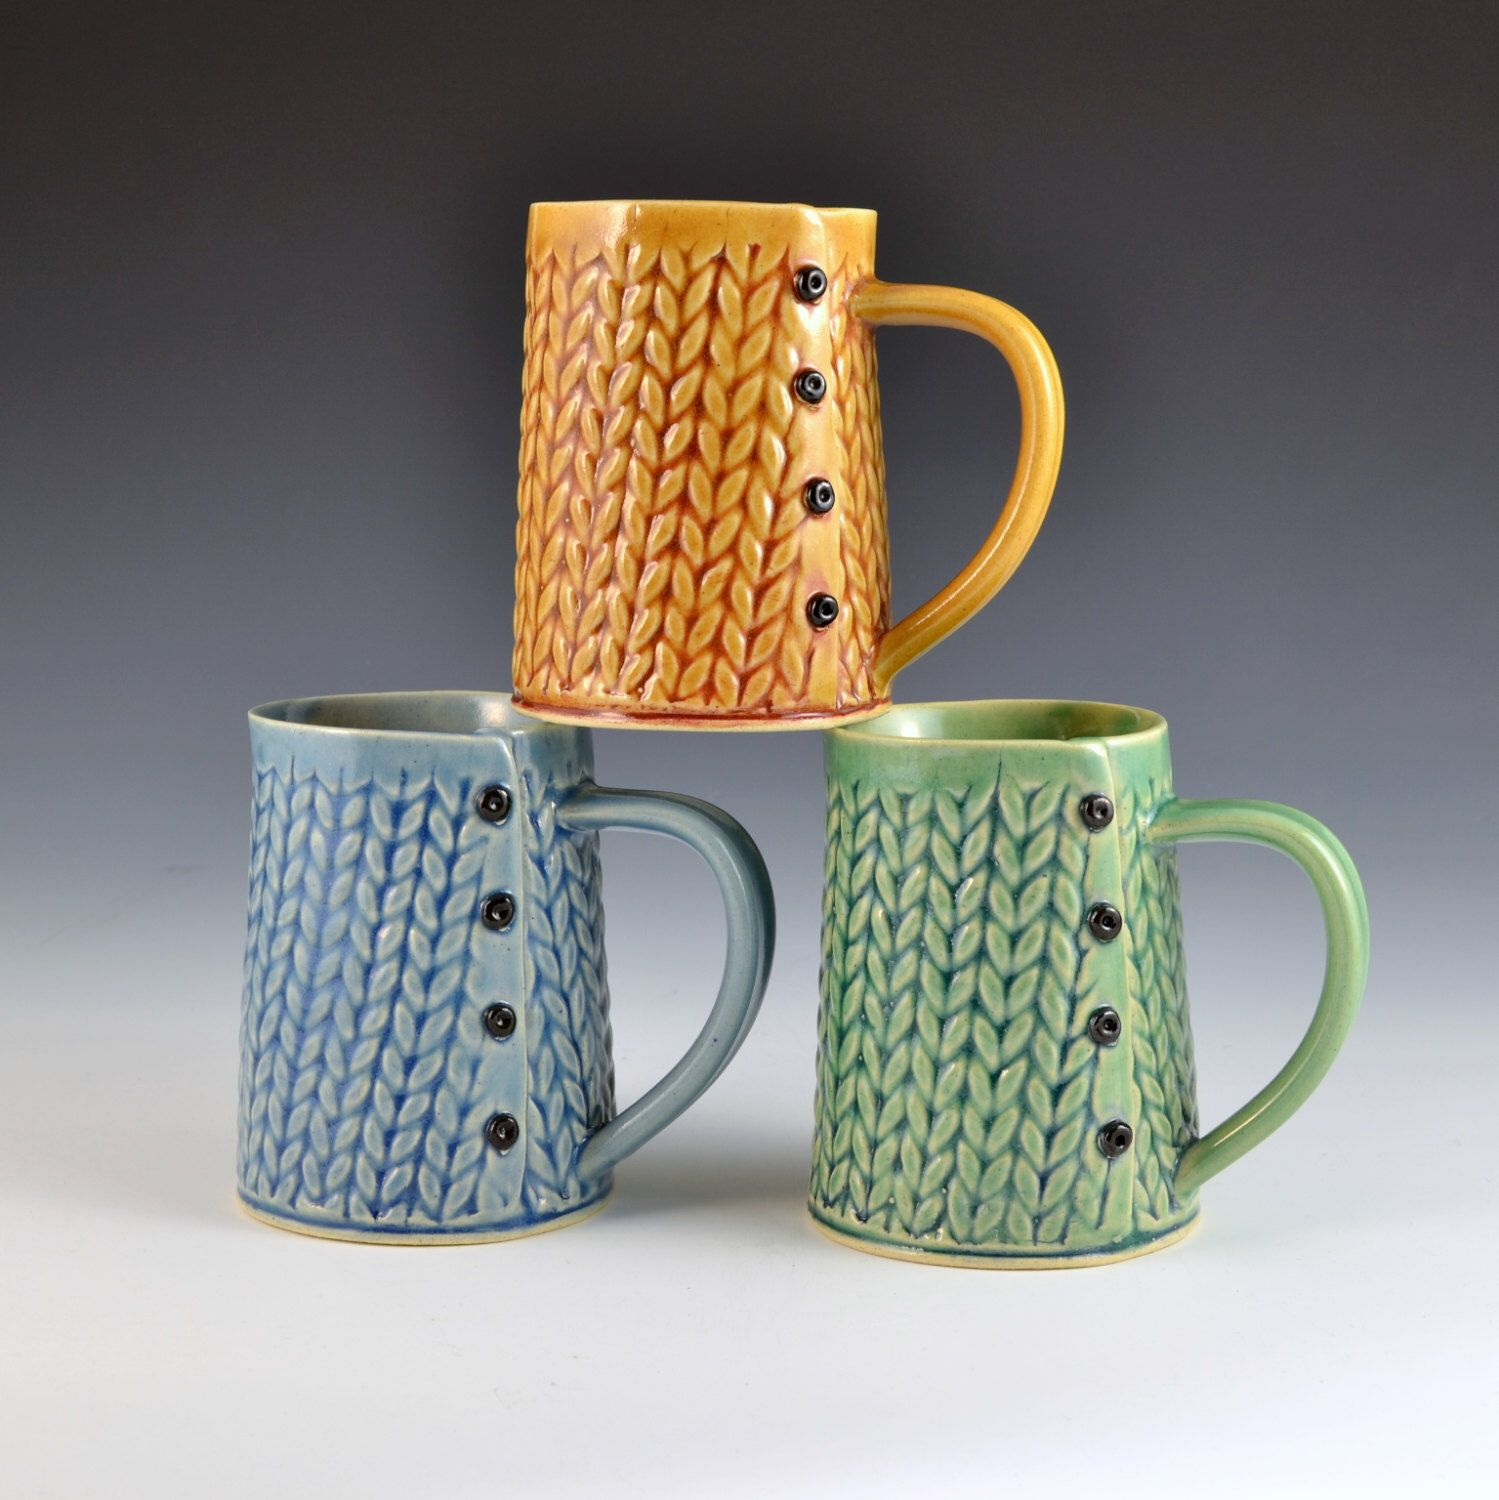 Knitted mug Handmade ceramic mug MADE to ORDER in 2019 ...